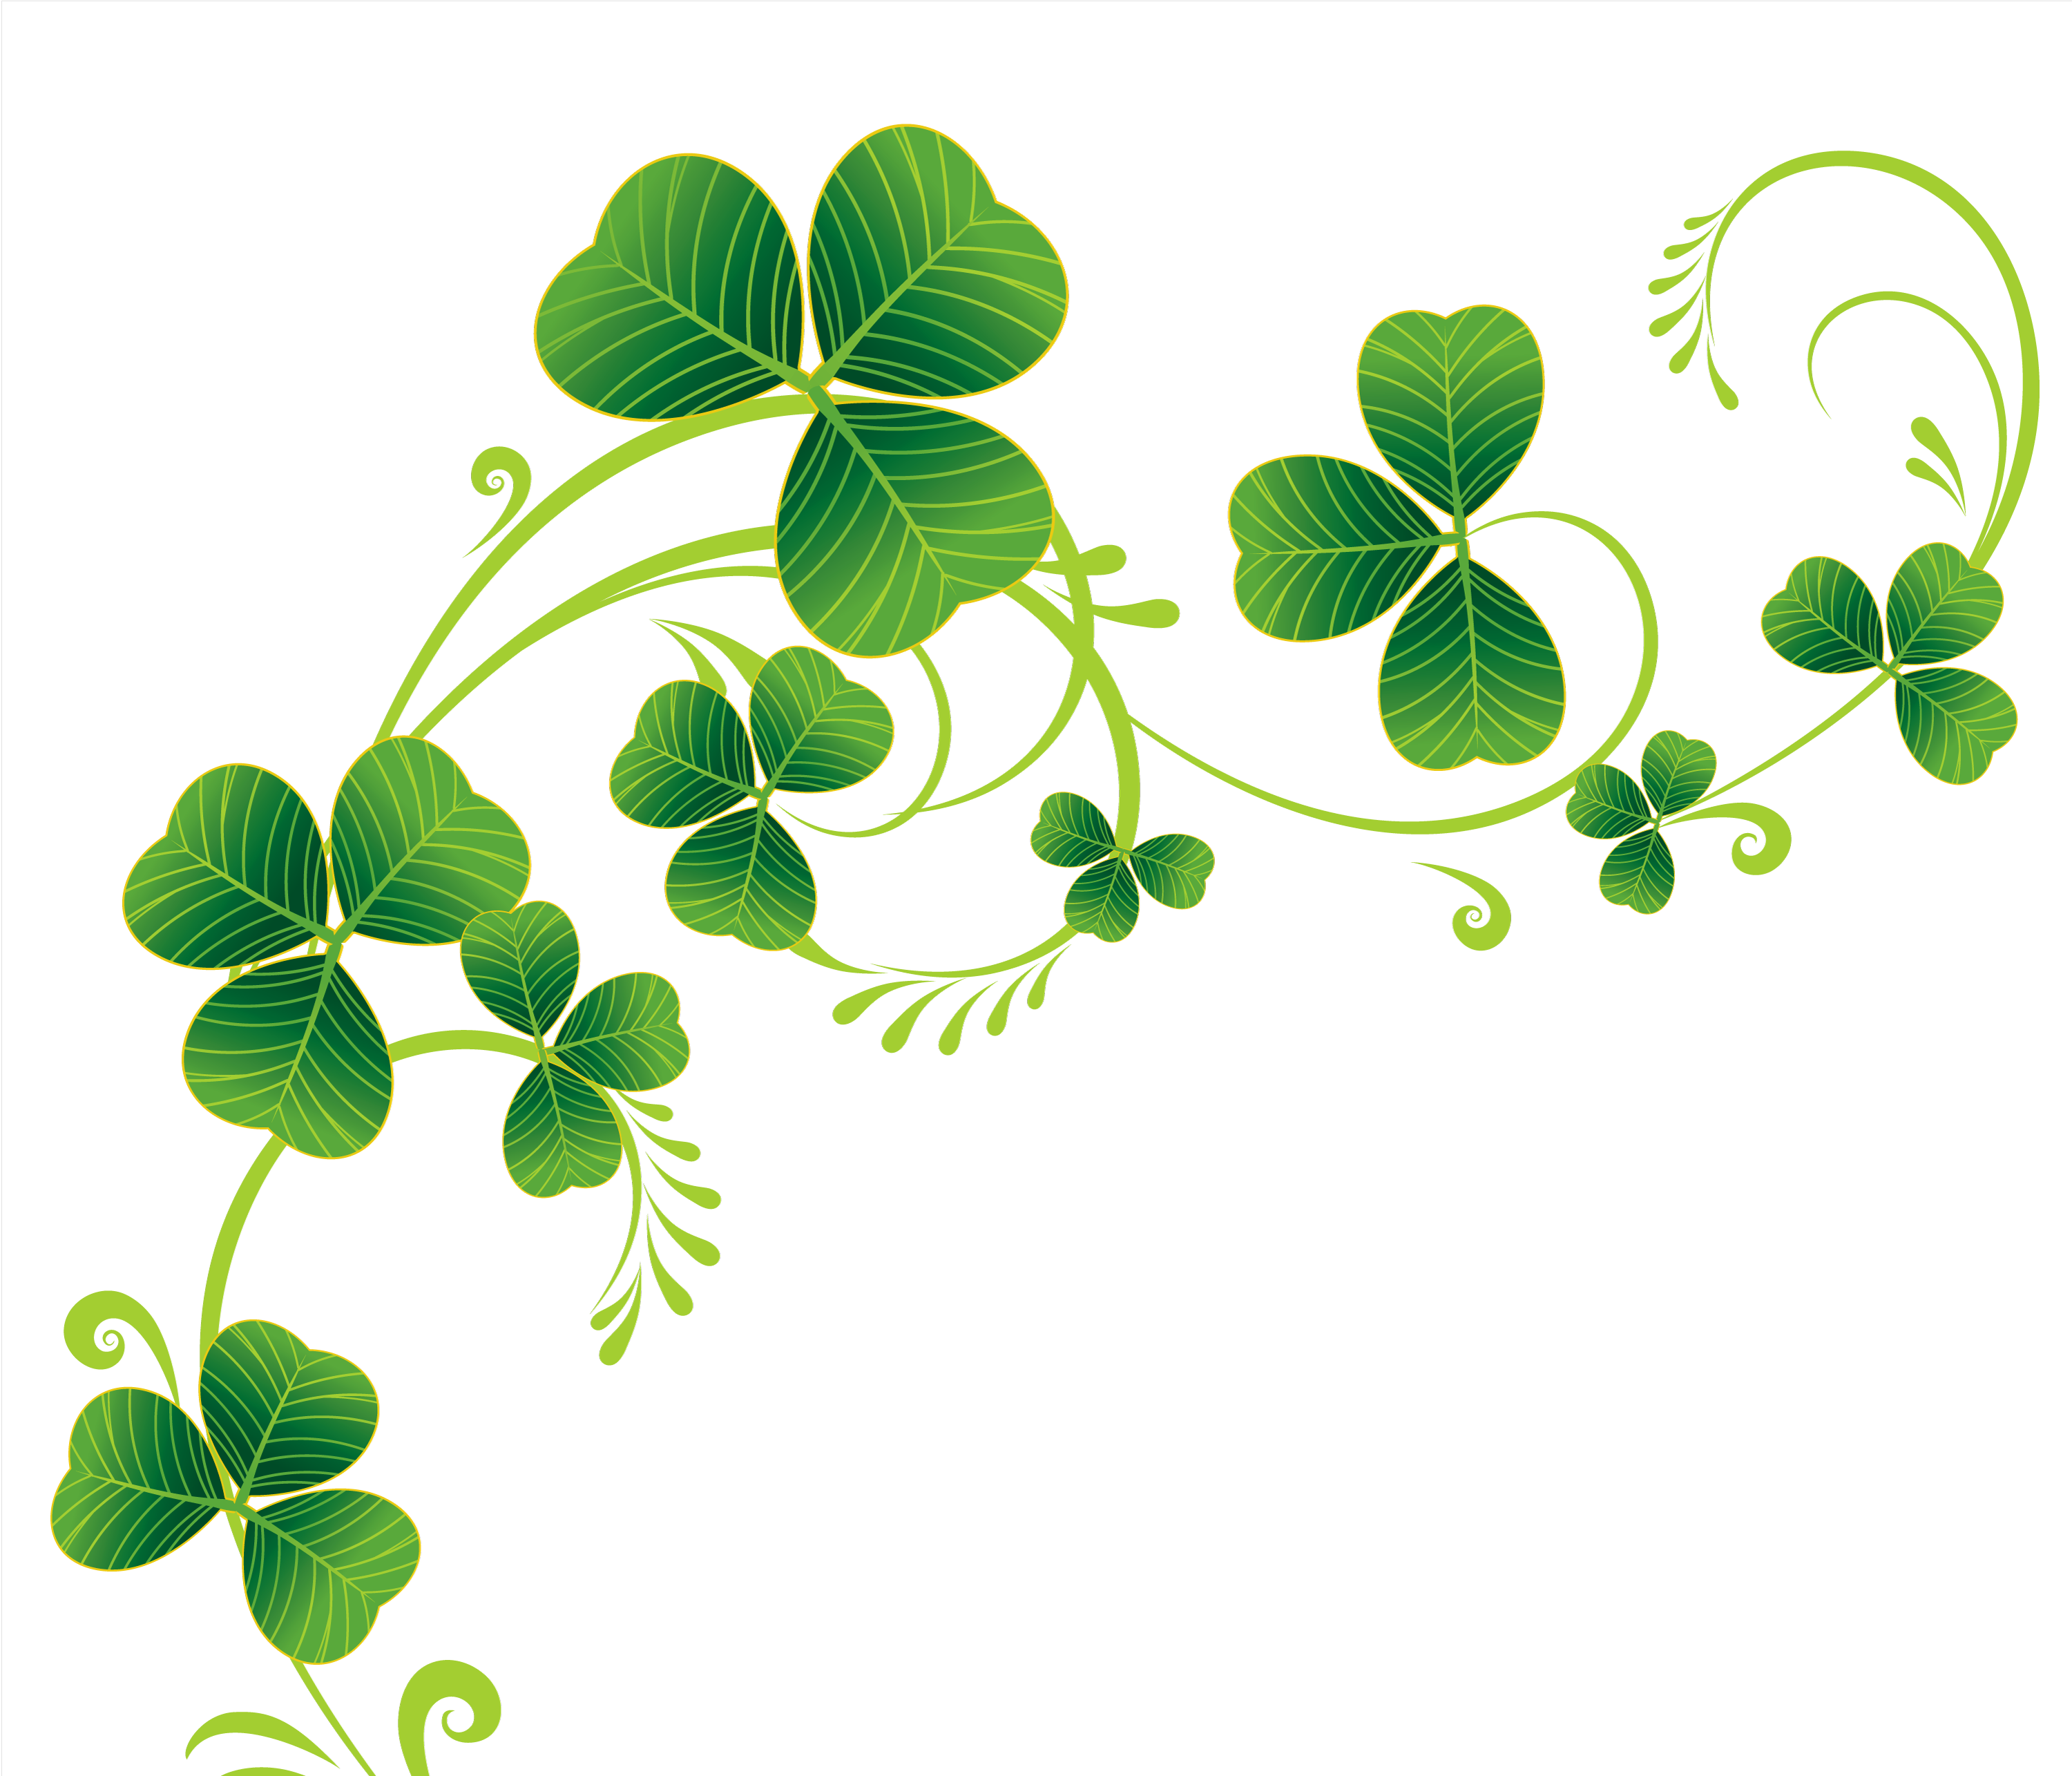 border of shamrocks clipart clipart kid the stirling pinterest rh pinterest com 3 leaf clover clipart clover clip art free